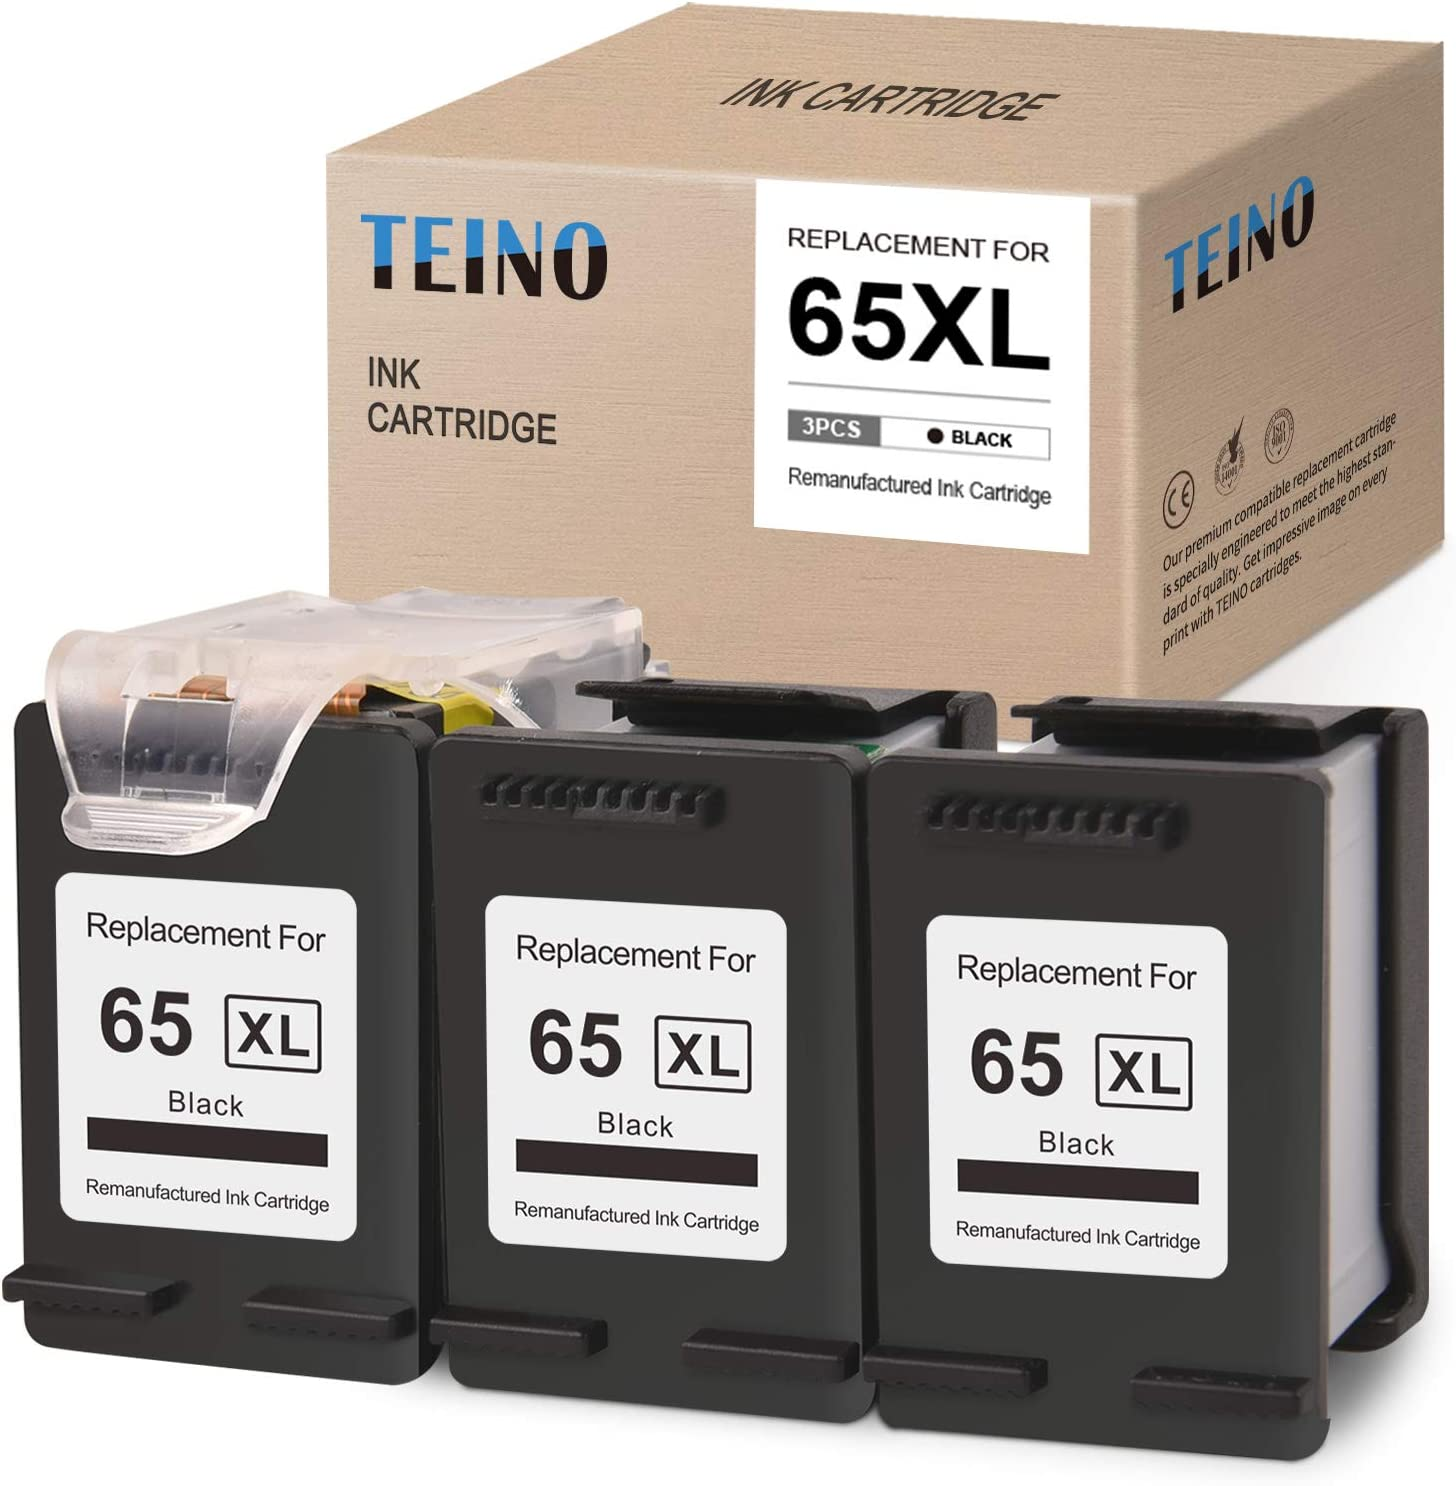 TEINO Remanufactured Ink Cartridges Replacement for HP 65 XL 65XL use with HP Envy 5052 5055 5058 5010 5020 5030 DeskJet 2622 2652 2655 3752 3755 APM 100 (1 Print Head, 3 Black Ink Cartridges)